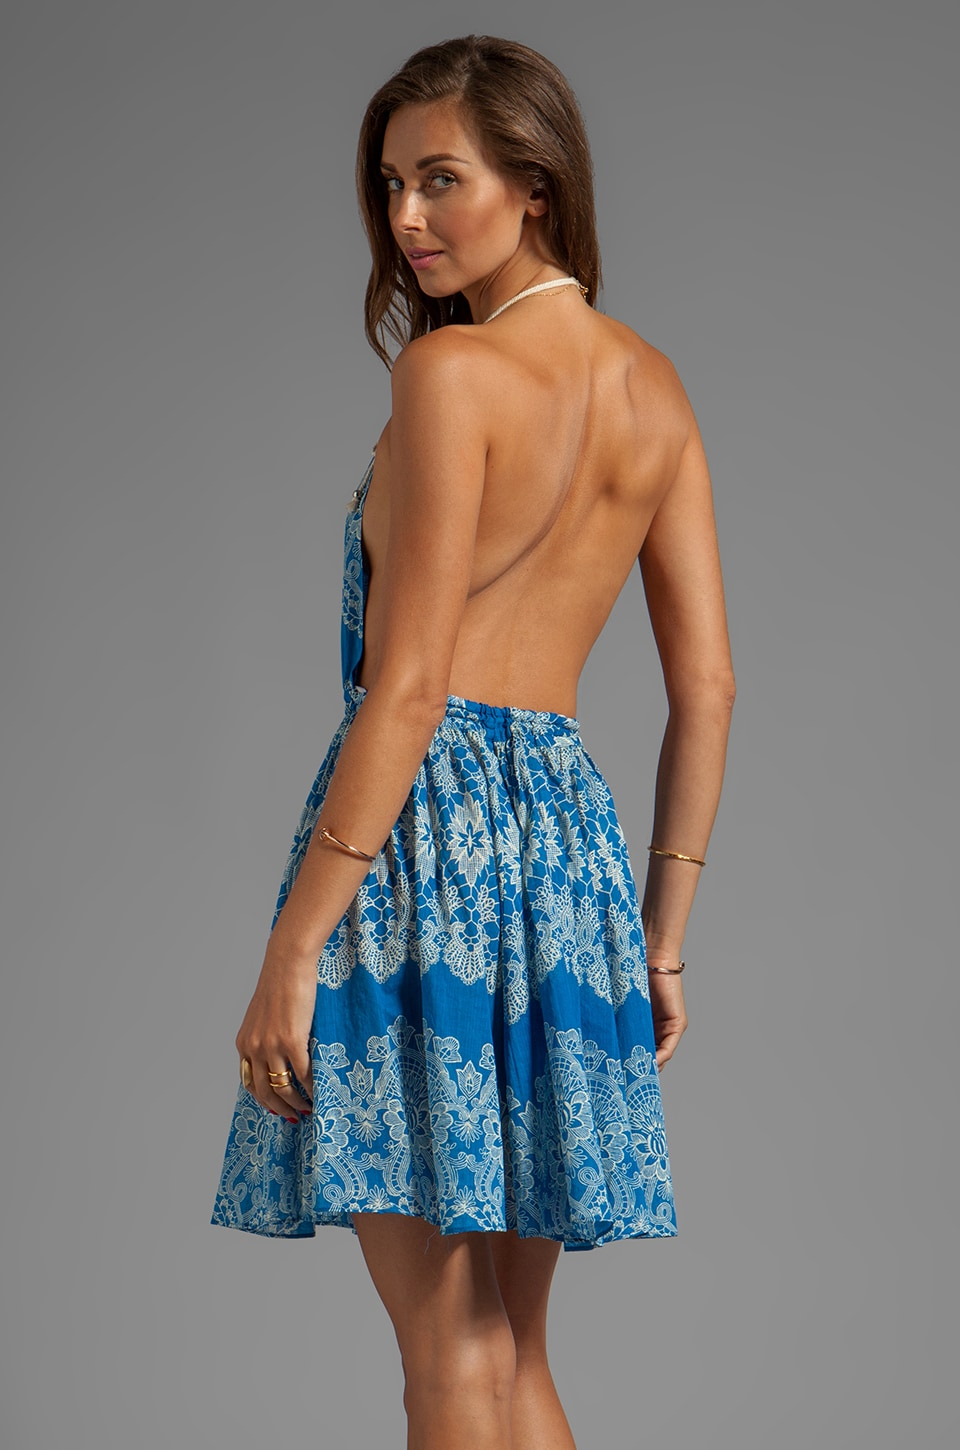 Zimmermann Drifter Backless Dress in Applique